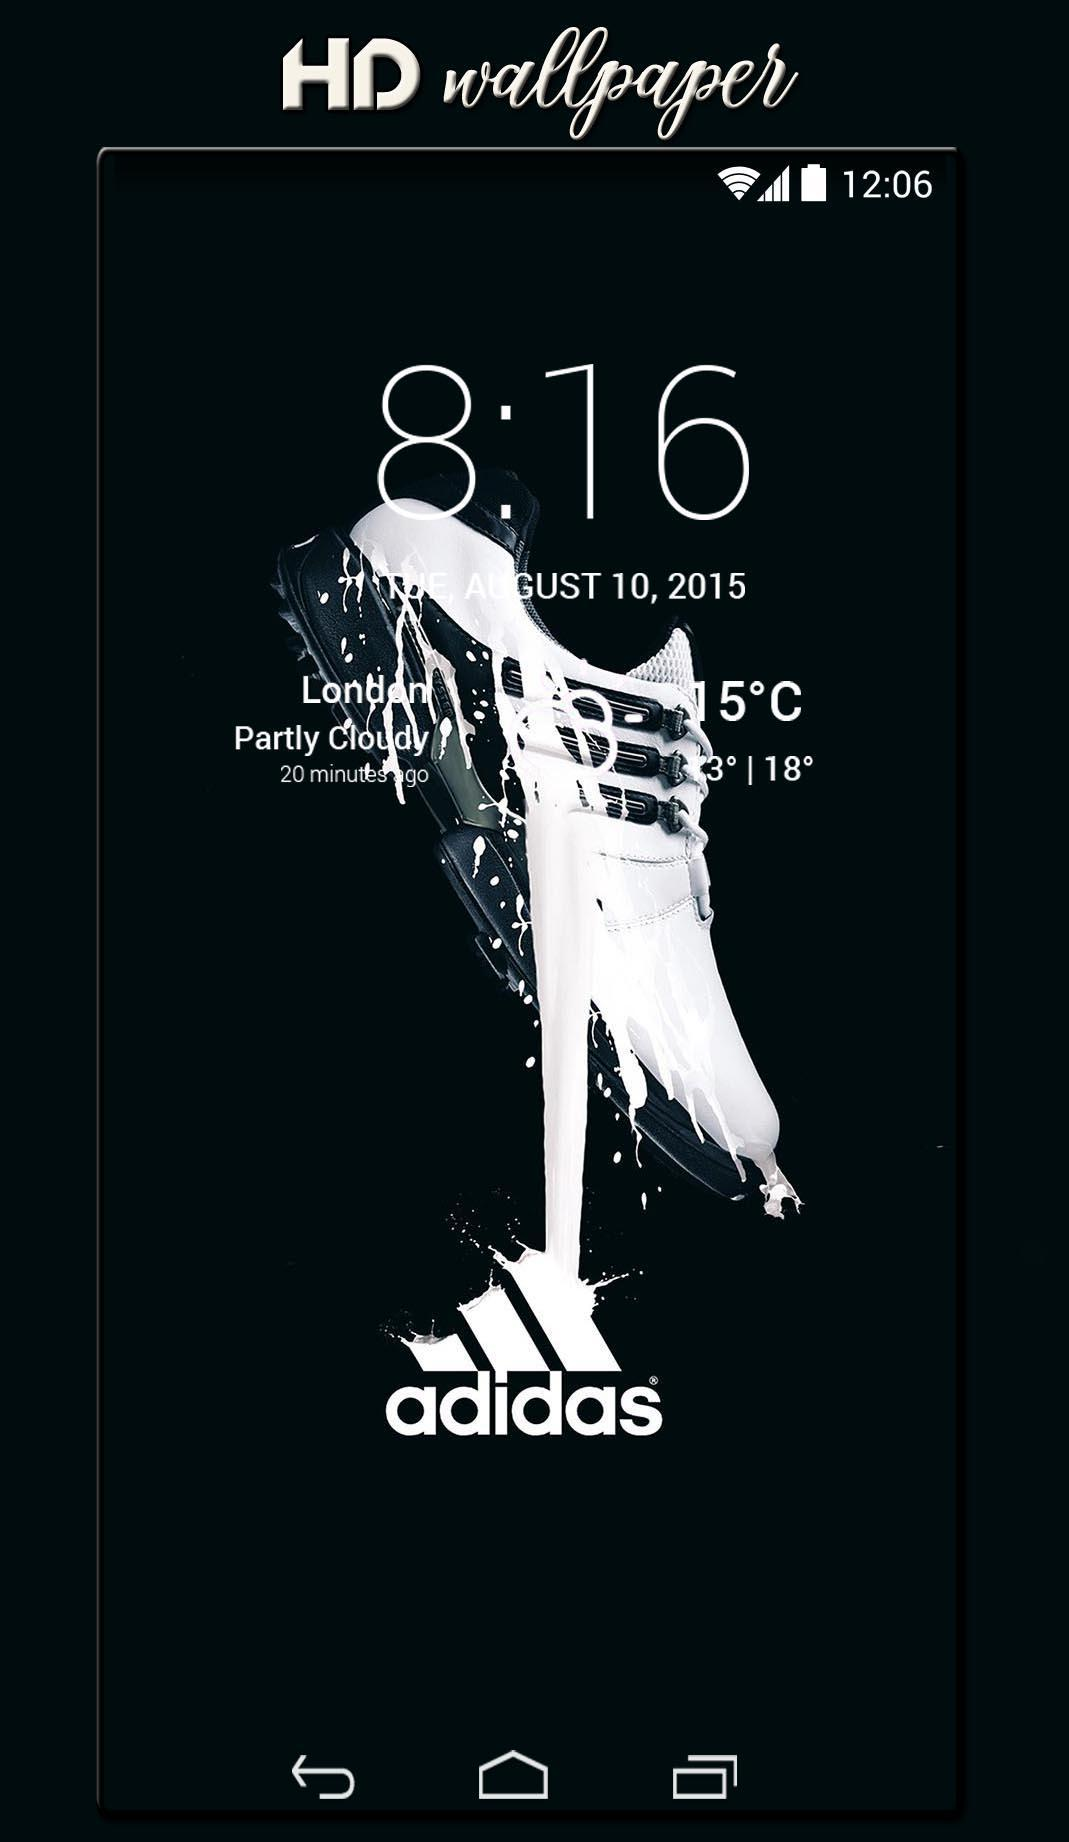 Adidas Wallpaper For Android Apk Download